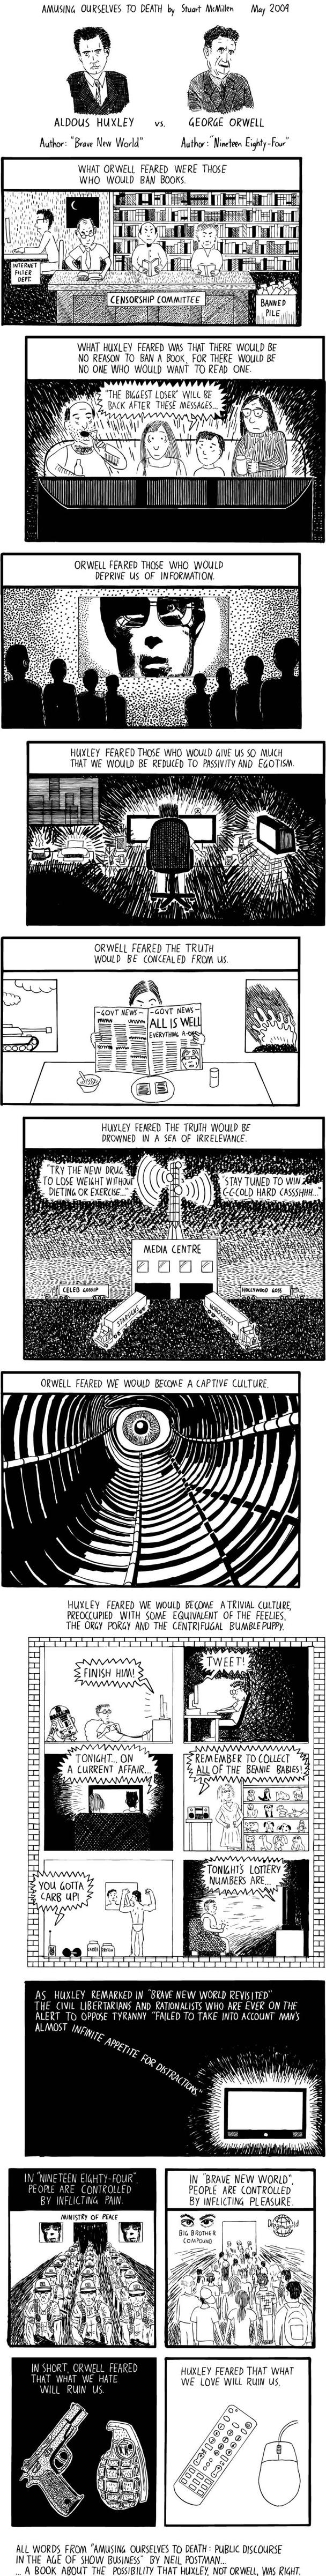 a webcomic that looks at the possibility that huxley was more right than orwell